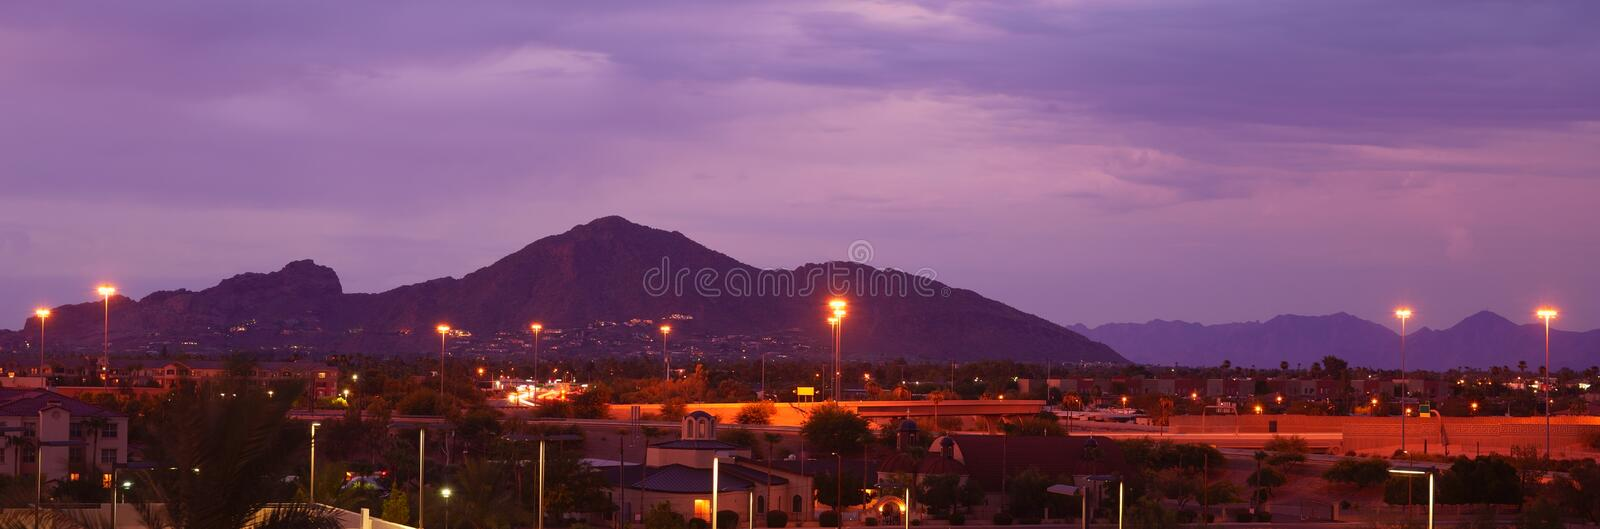 Phoenix, Arizona, USA cityscape at night with famous Camelback Mountain. Phoenix, Arizona, metropolitan area in beautiful colors at dusk with prominent landmark royalty free stock images